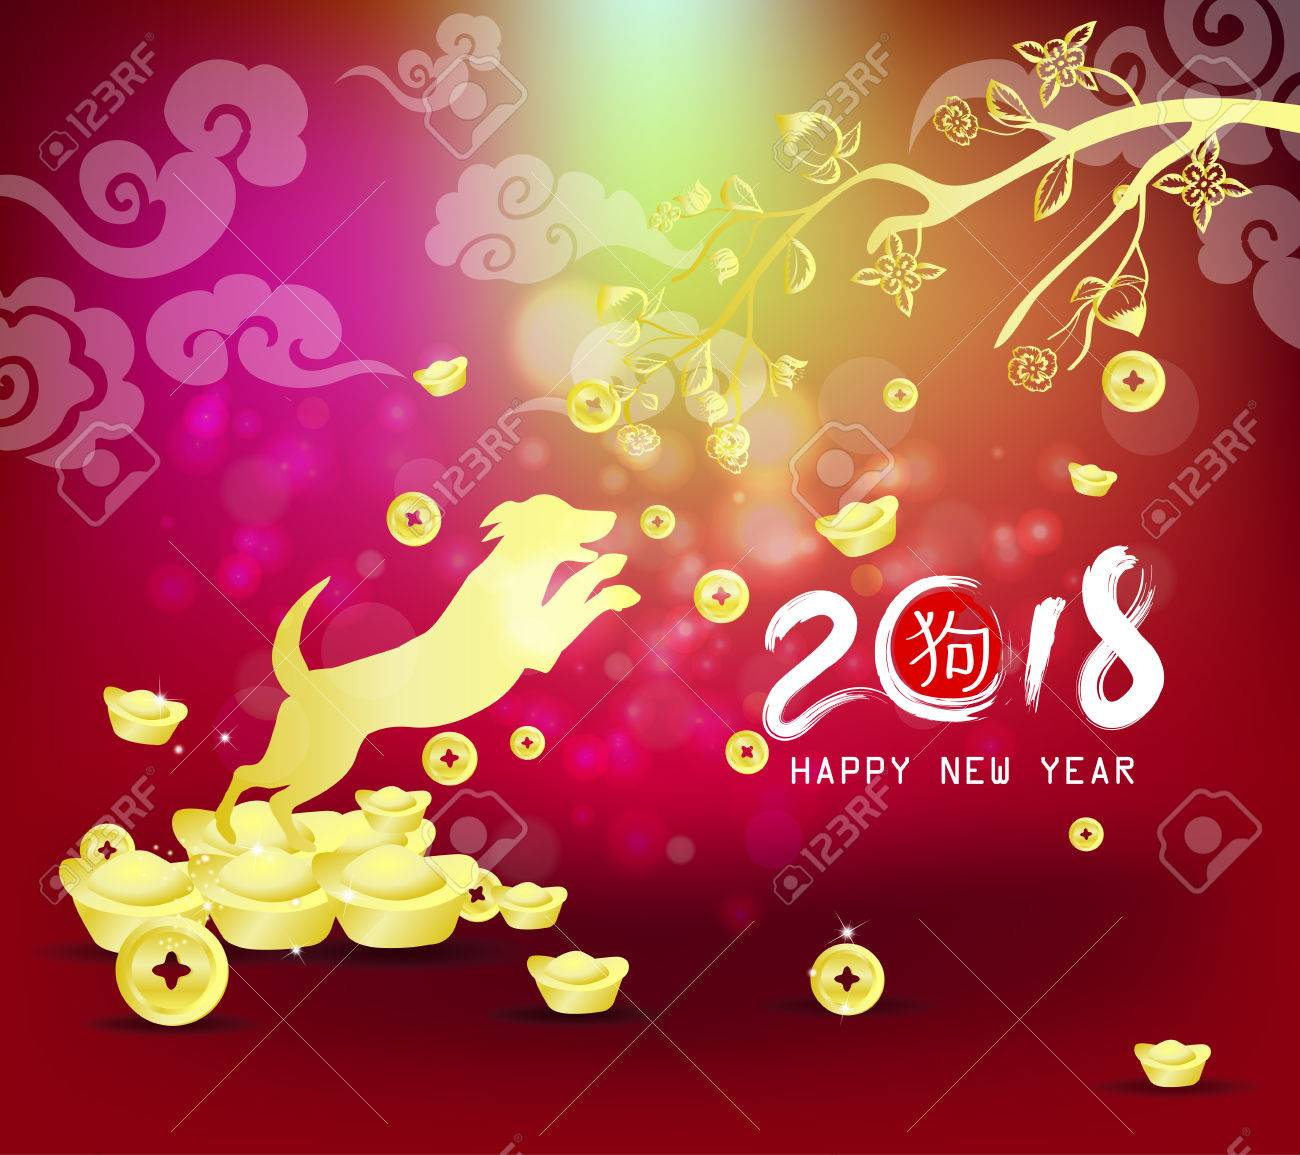 happy new year 2018 chinese new year of the dog with gold background stock